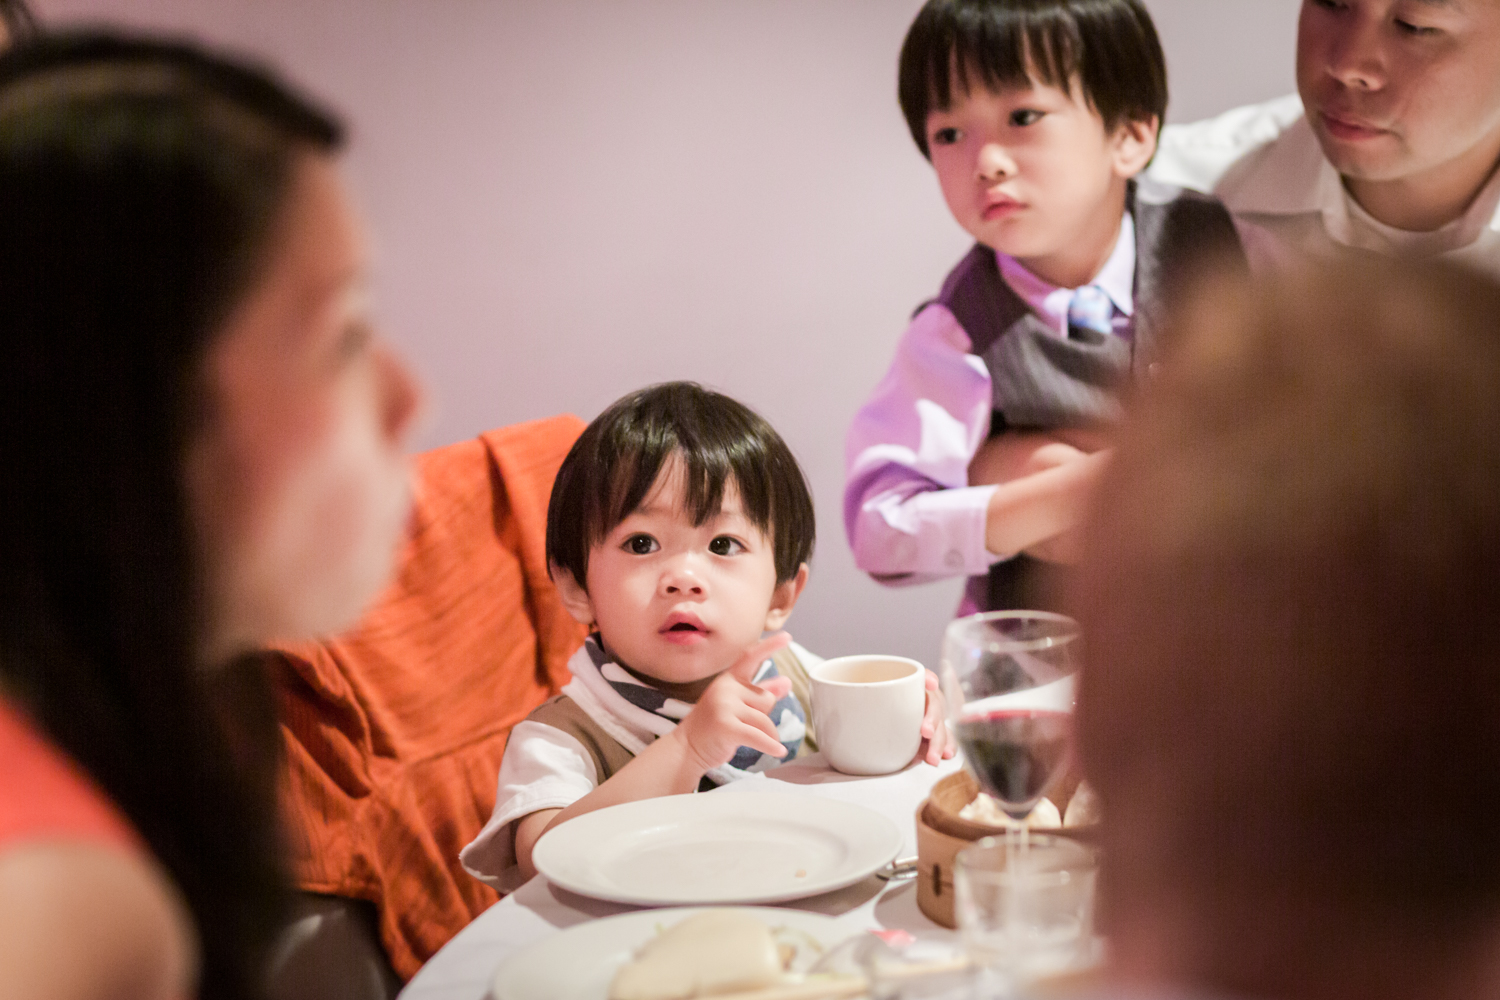 Two little boys watching woman at table